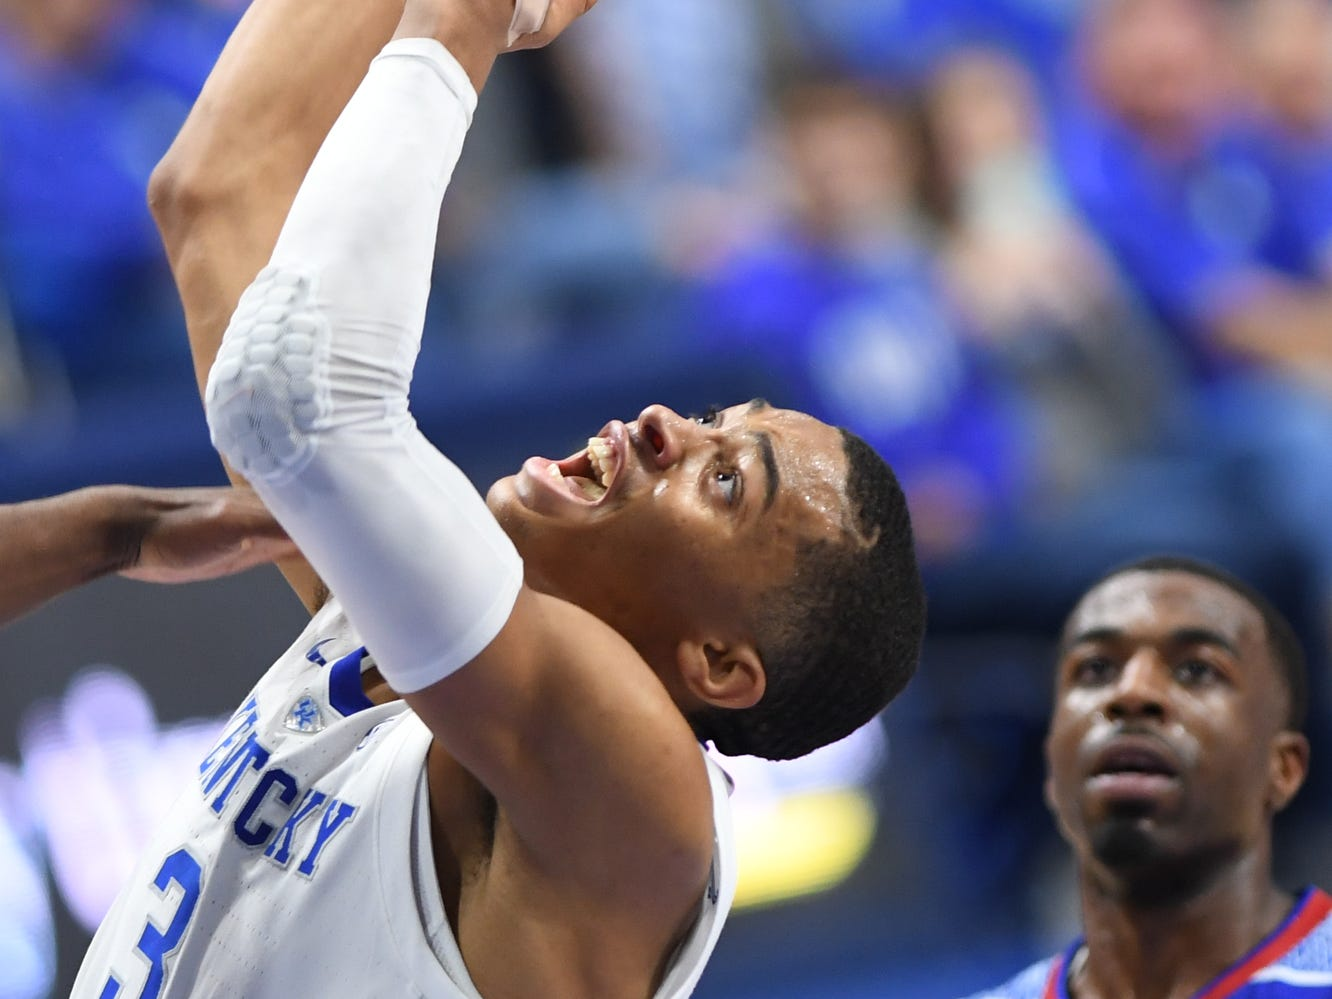 UK G Keldon Johnson goes up with the ball during the University of Kentucky men's basketball game against Tennessee State at Rupp Arena in Lexington, Kentucky, on Friday, Nov. 23, 2018.